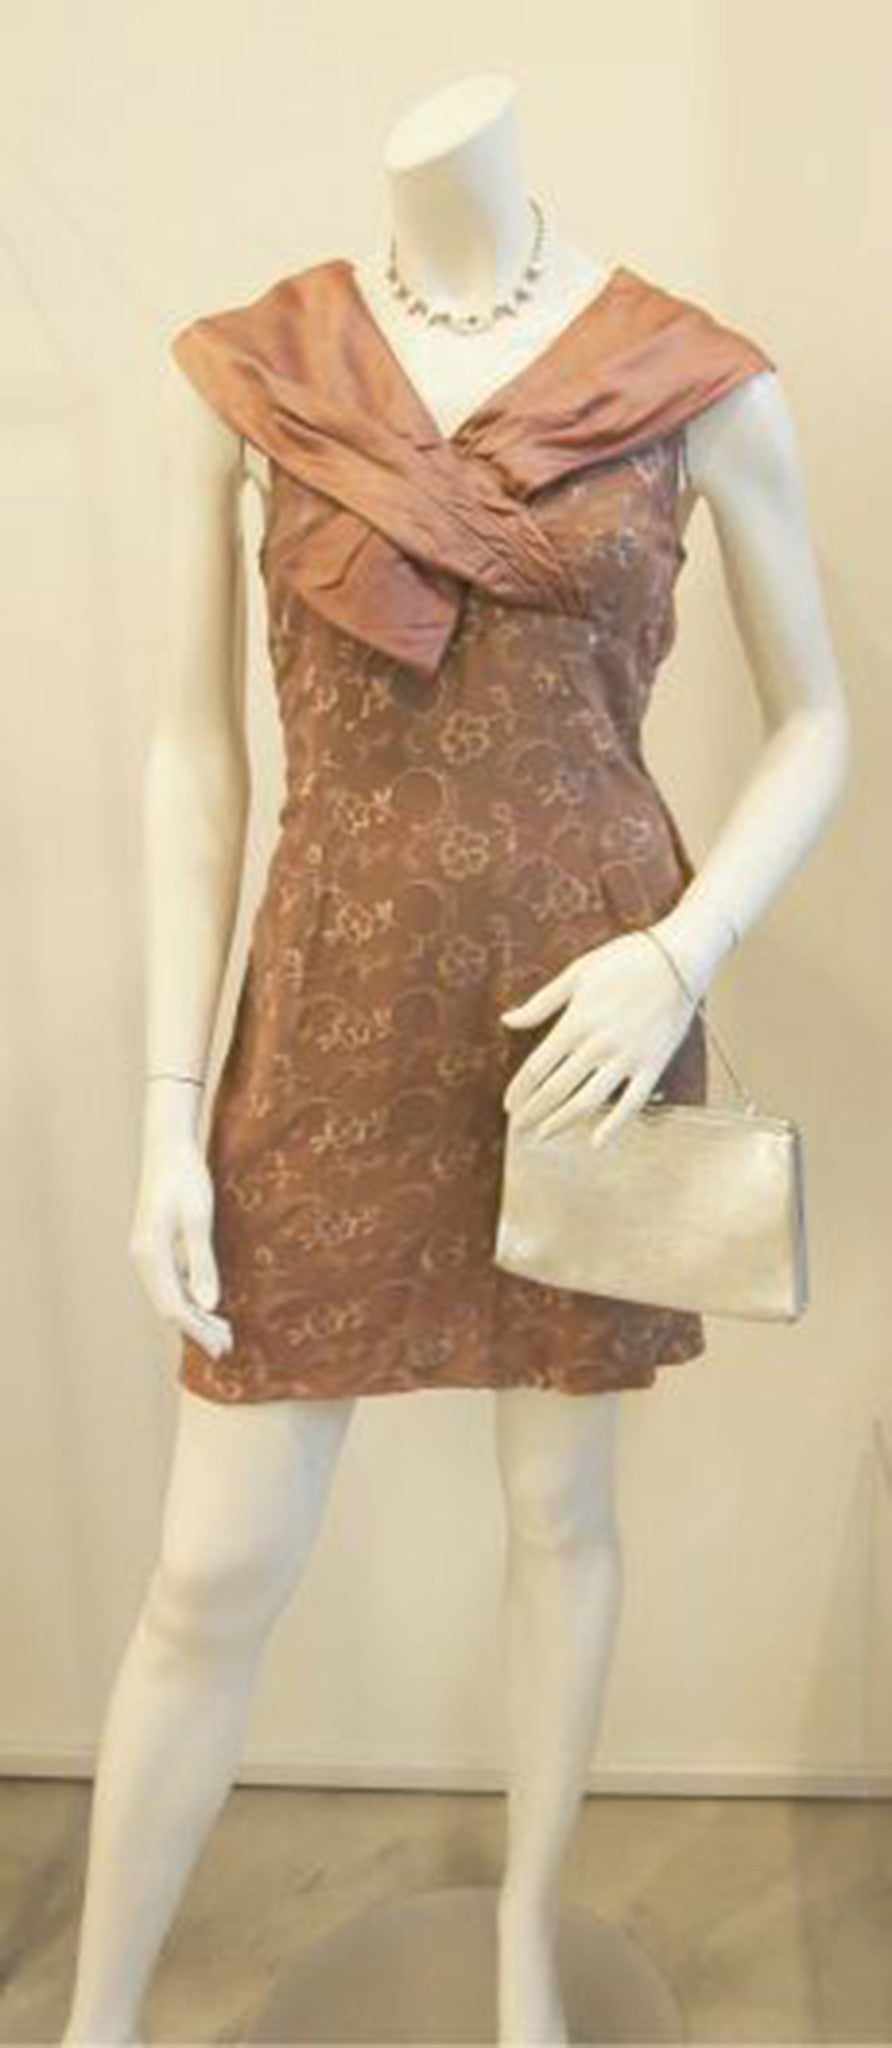 Mocha Cravings Vintage Lace Dress in Brown